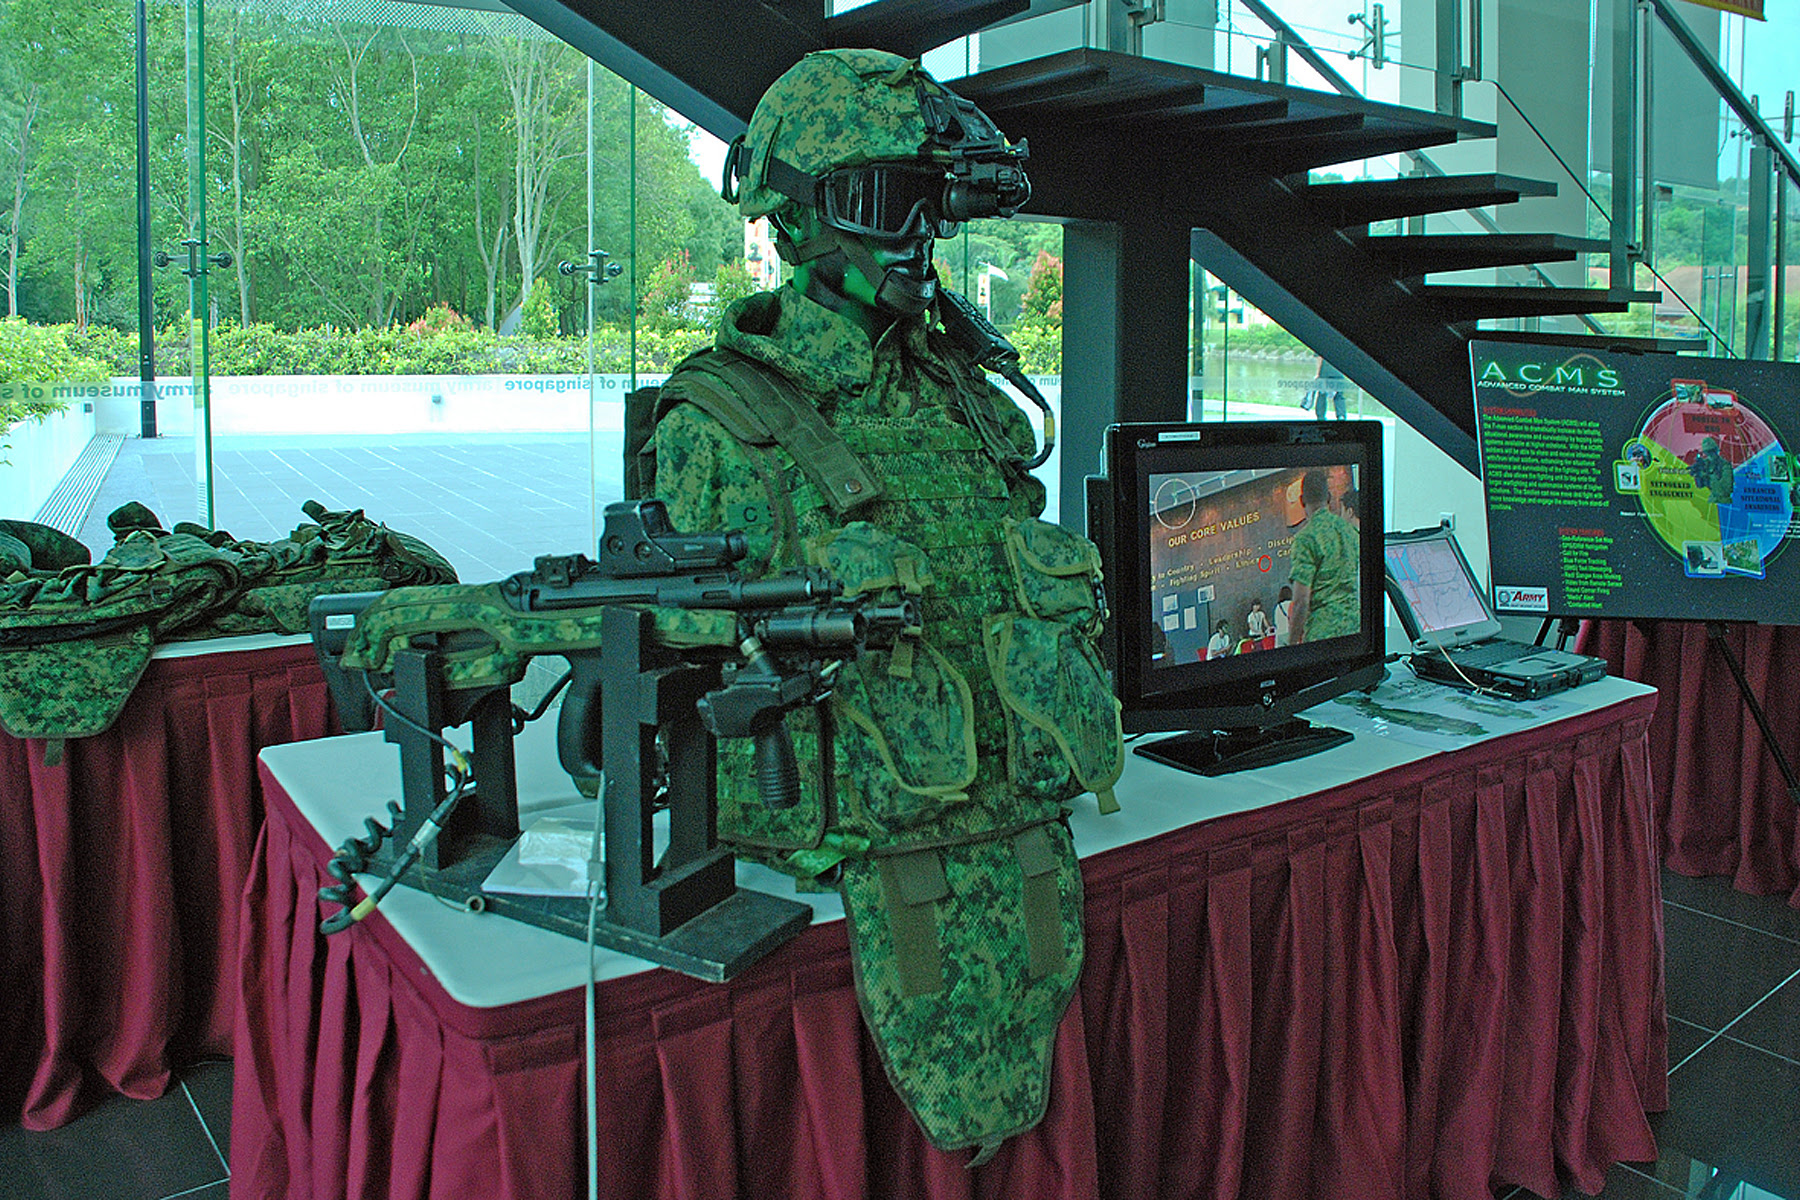 Army Museum of Singapore Location Map,Location Map of Army Museum of Singapore,Army Museum of Singapore accommodation destinations attractions hotels map reviews photos pictures,army museum of singapore contact address,singapore military history armed forces museum